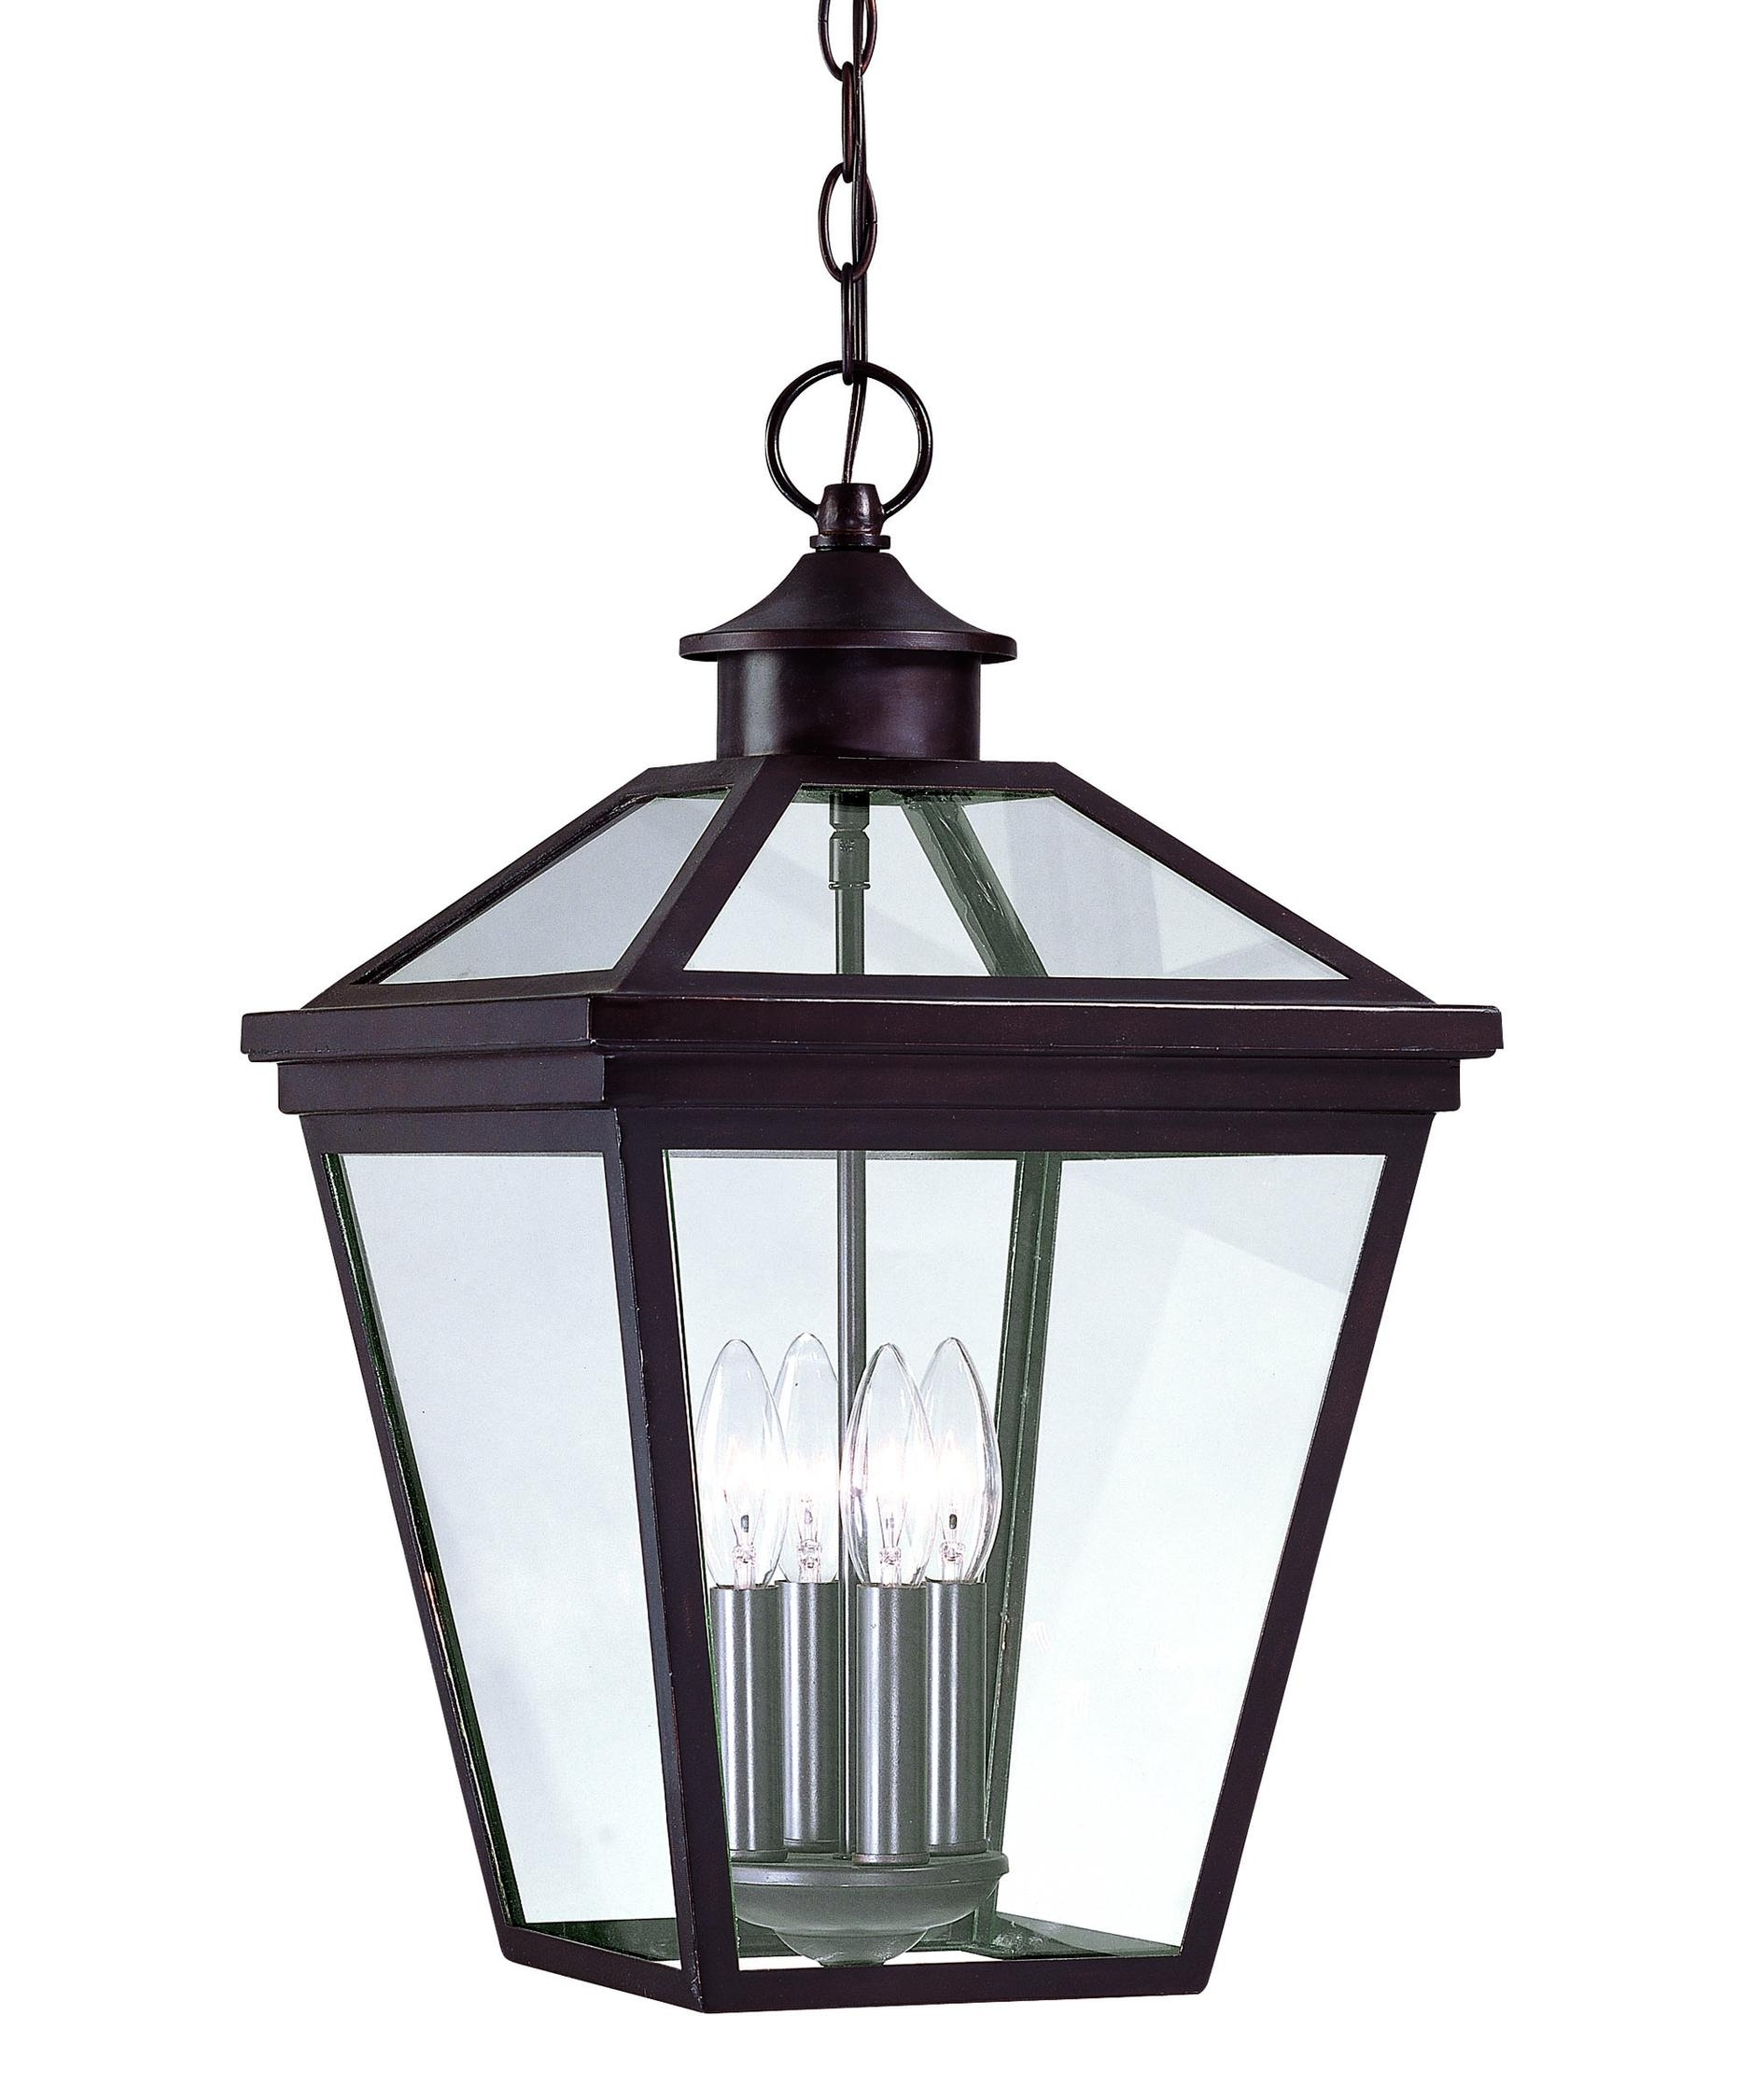 Wide Outdoor Hanging Light With 4 Lamps   Beautiful Chandeliers In Outdoor Hanging Lamps (View 10 of 15)